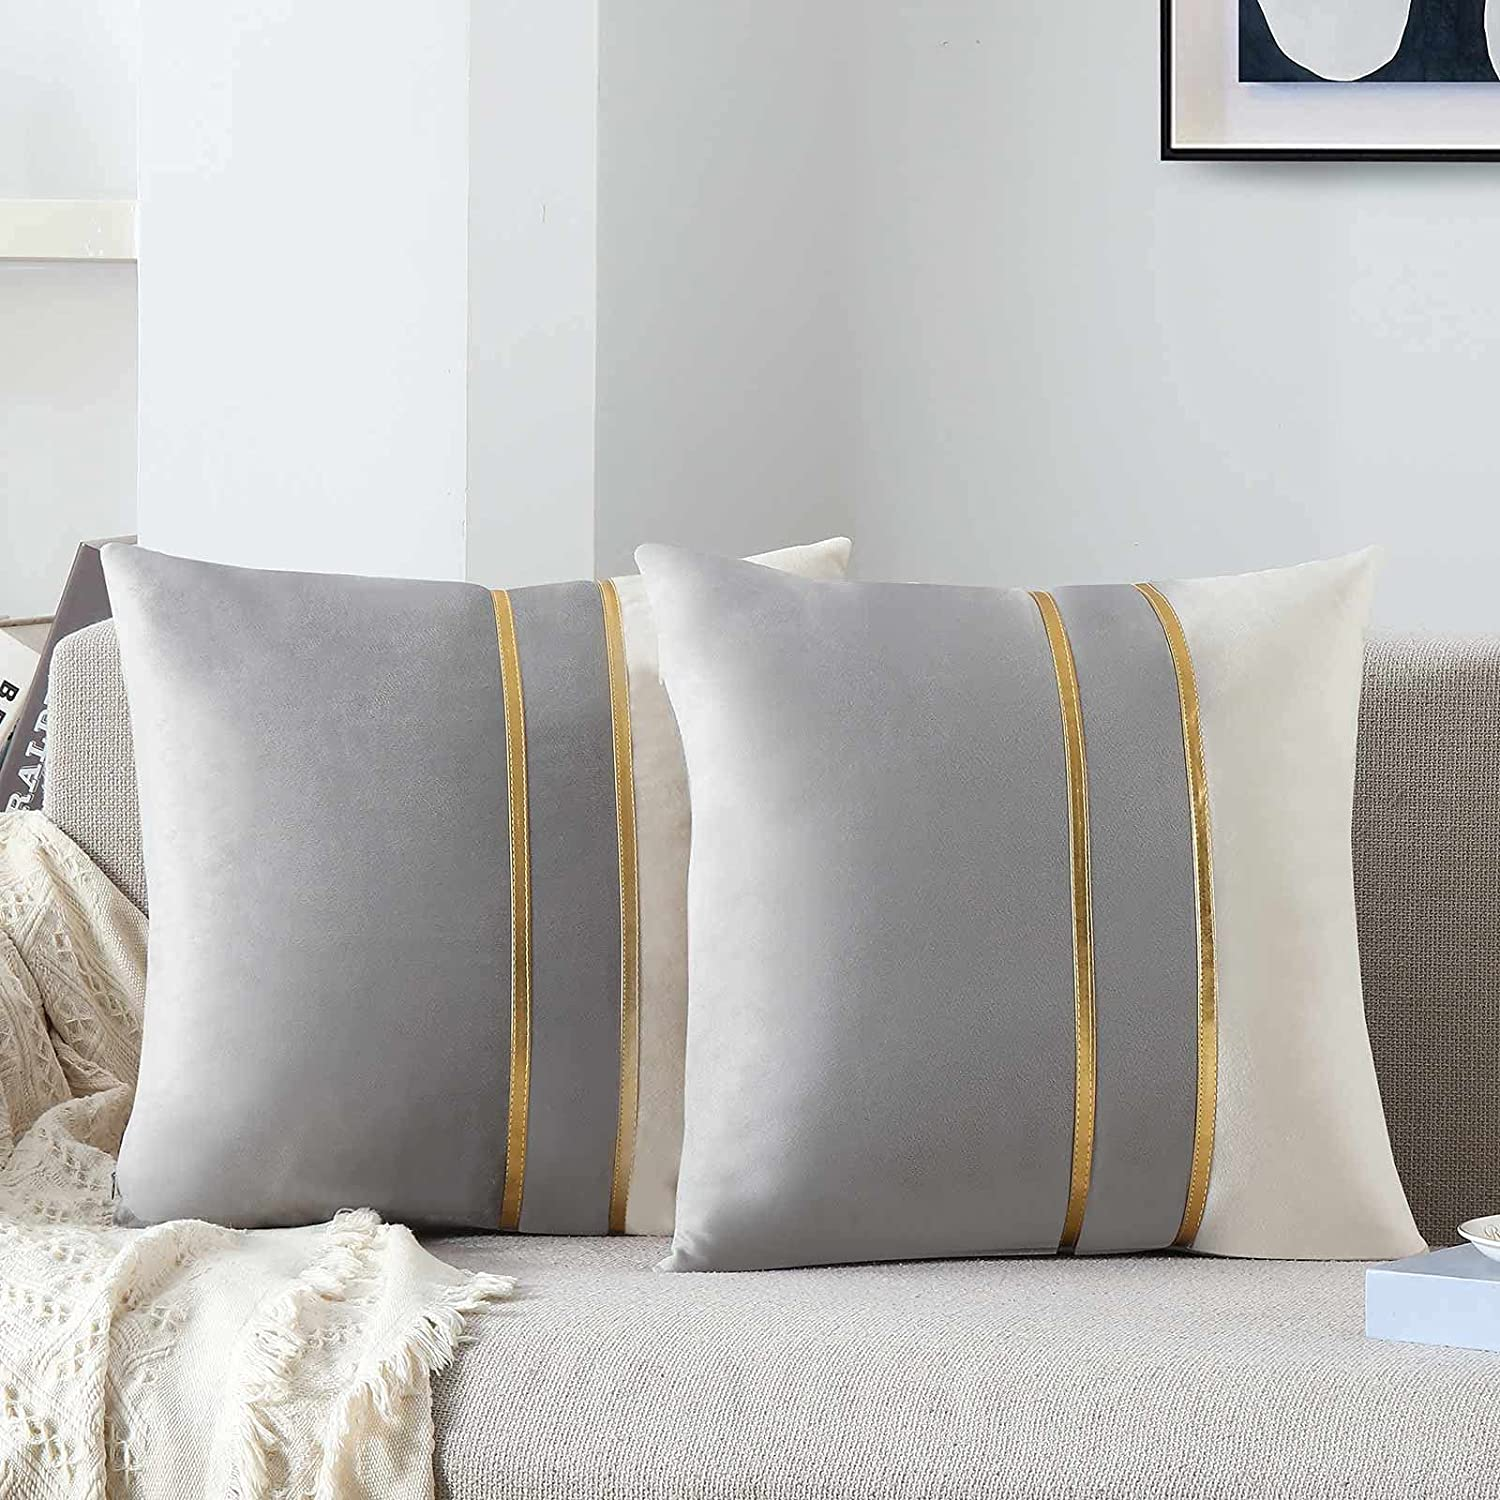 WACOMECO Velvet Throw Pillow Covers Decorative Cushion Soft New Shipping Free Co - Shipping included